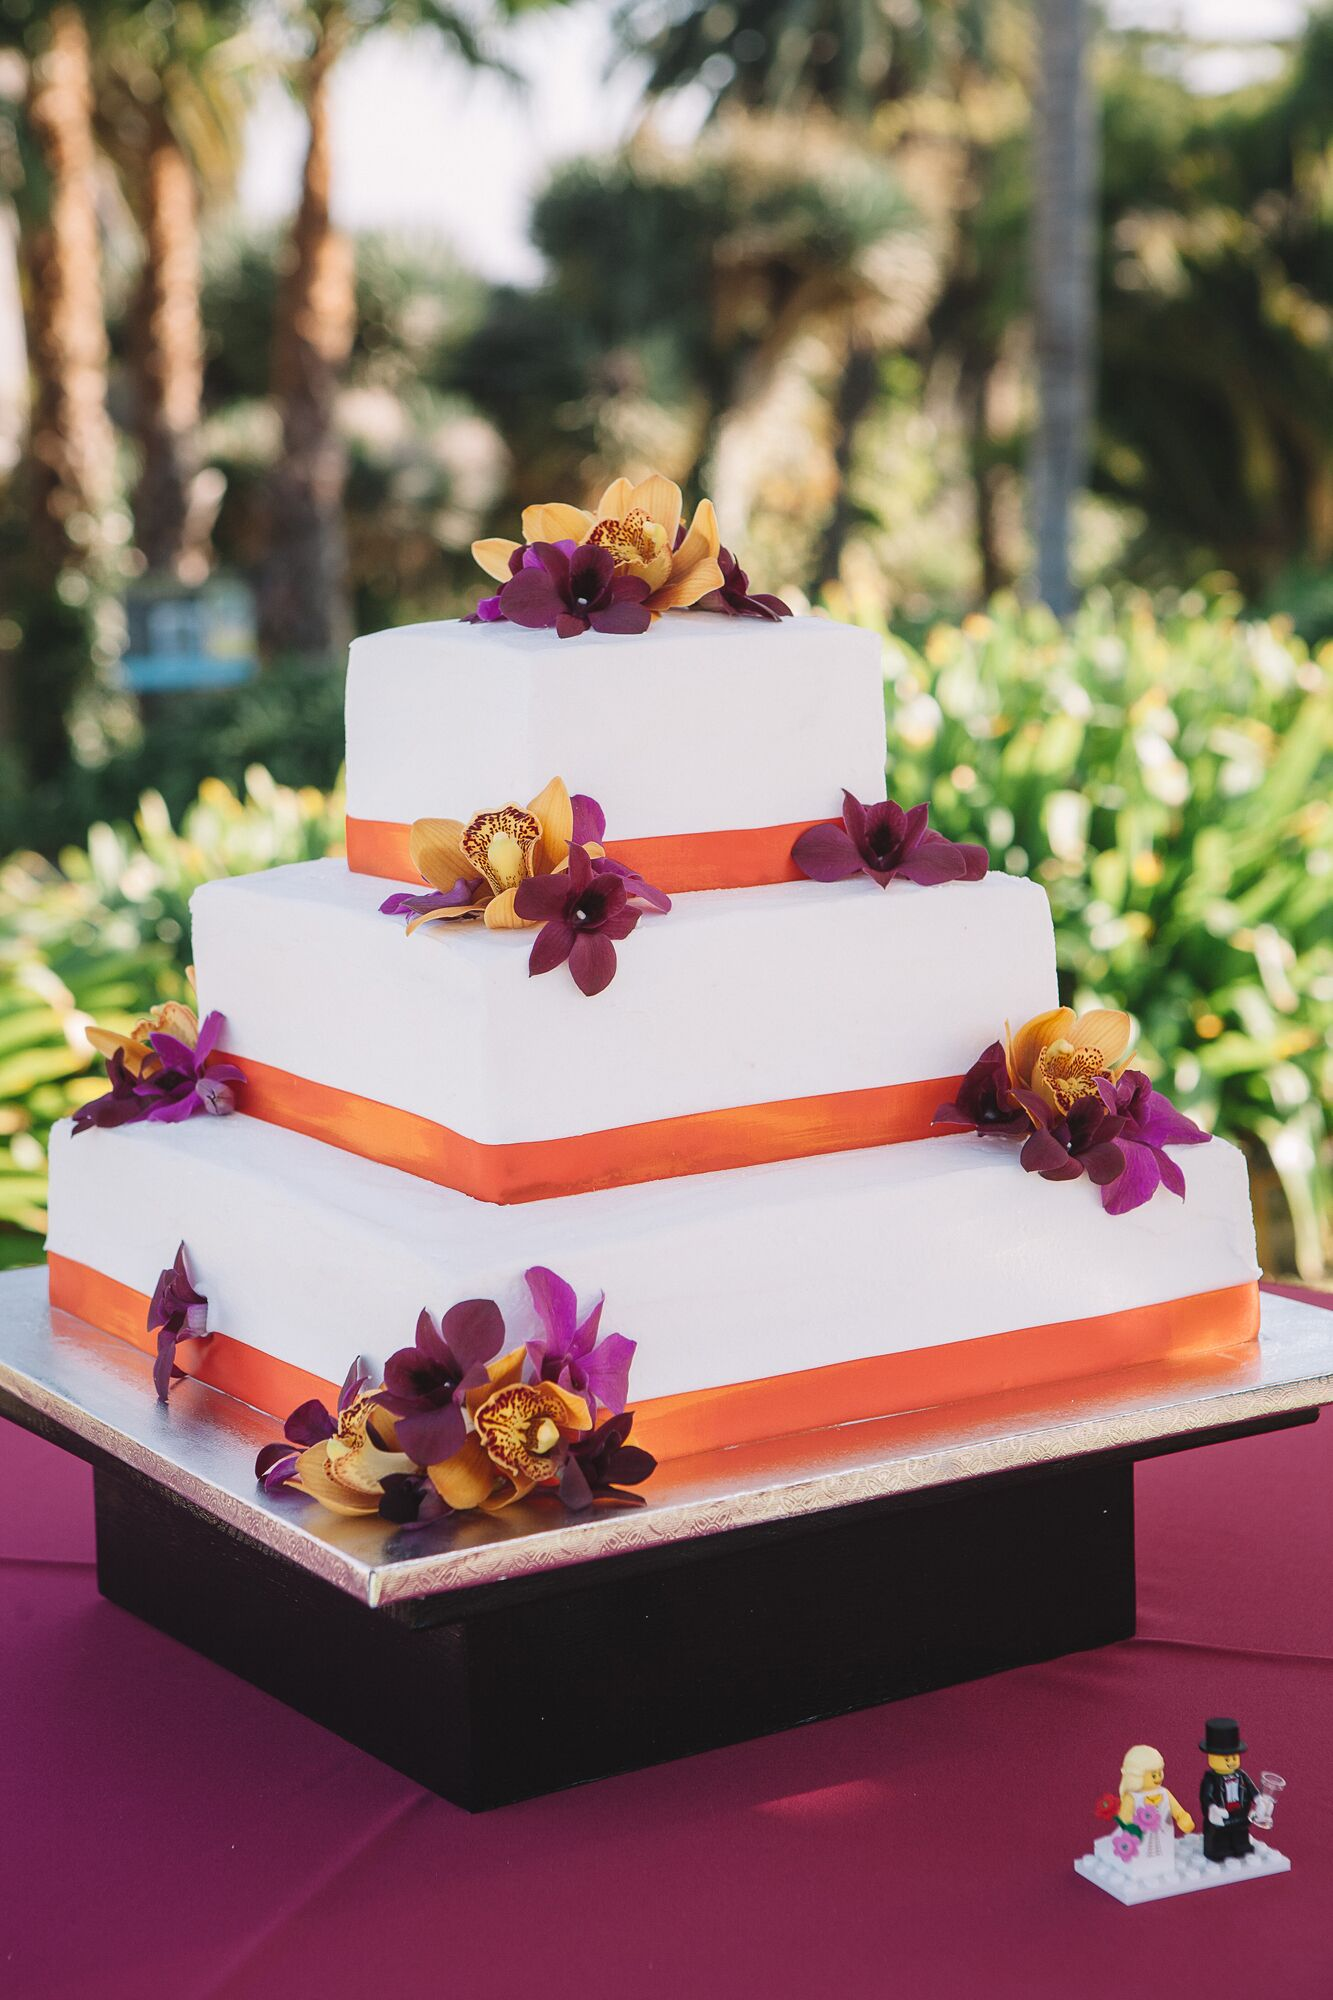 Ivory Wedding Cake Decorated with Flowers